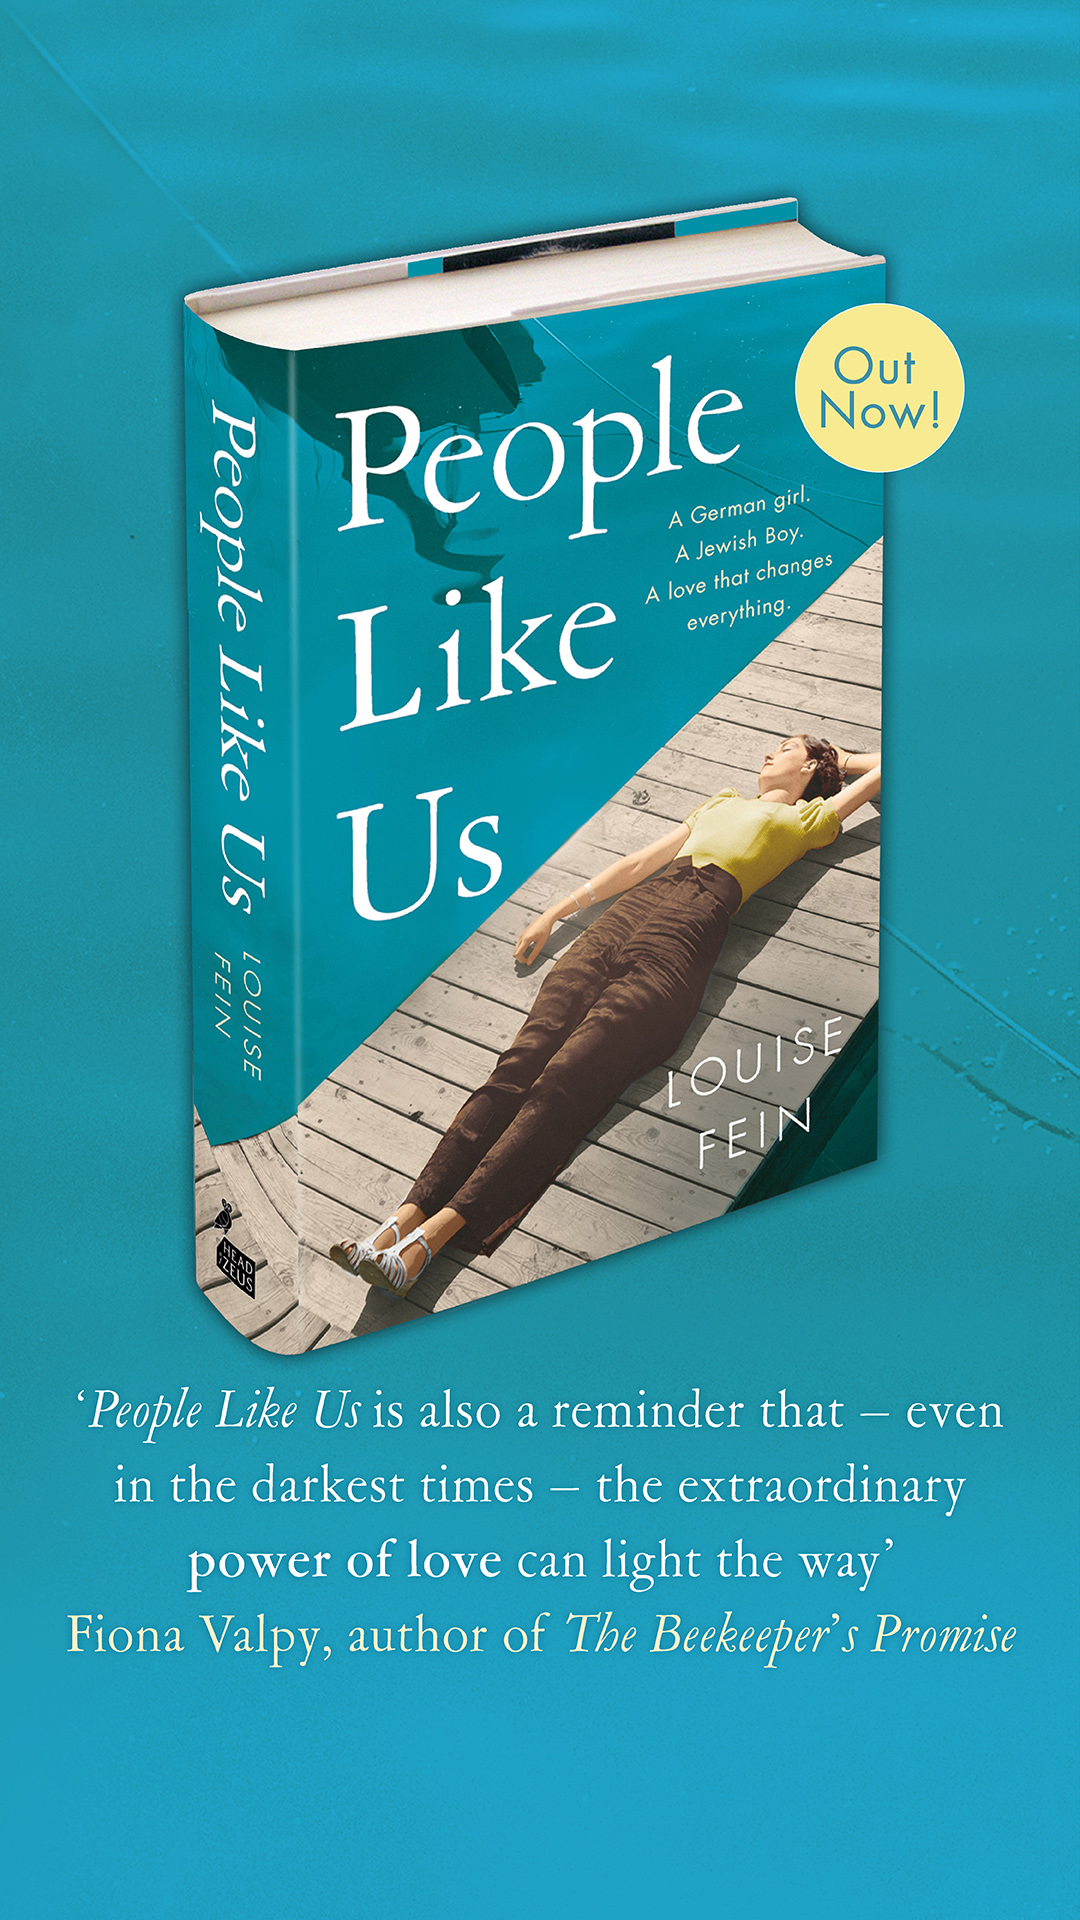 People like us instastory  ads  1